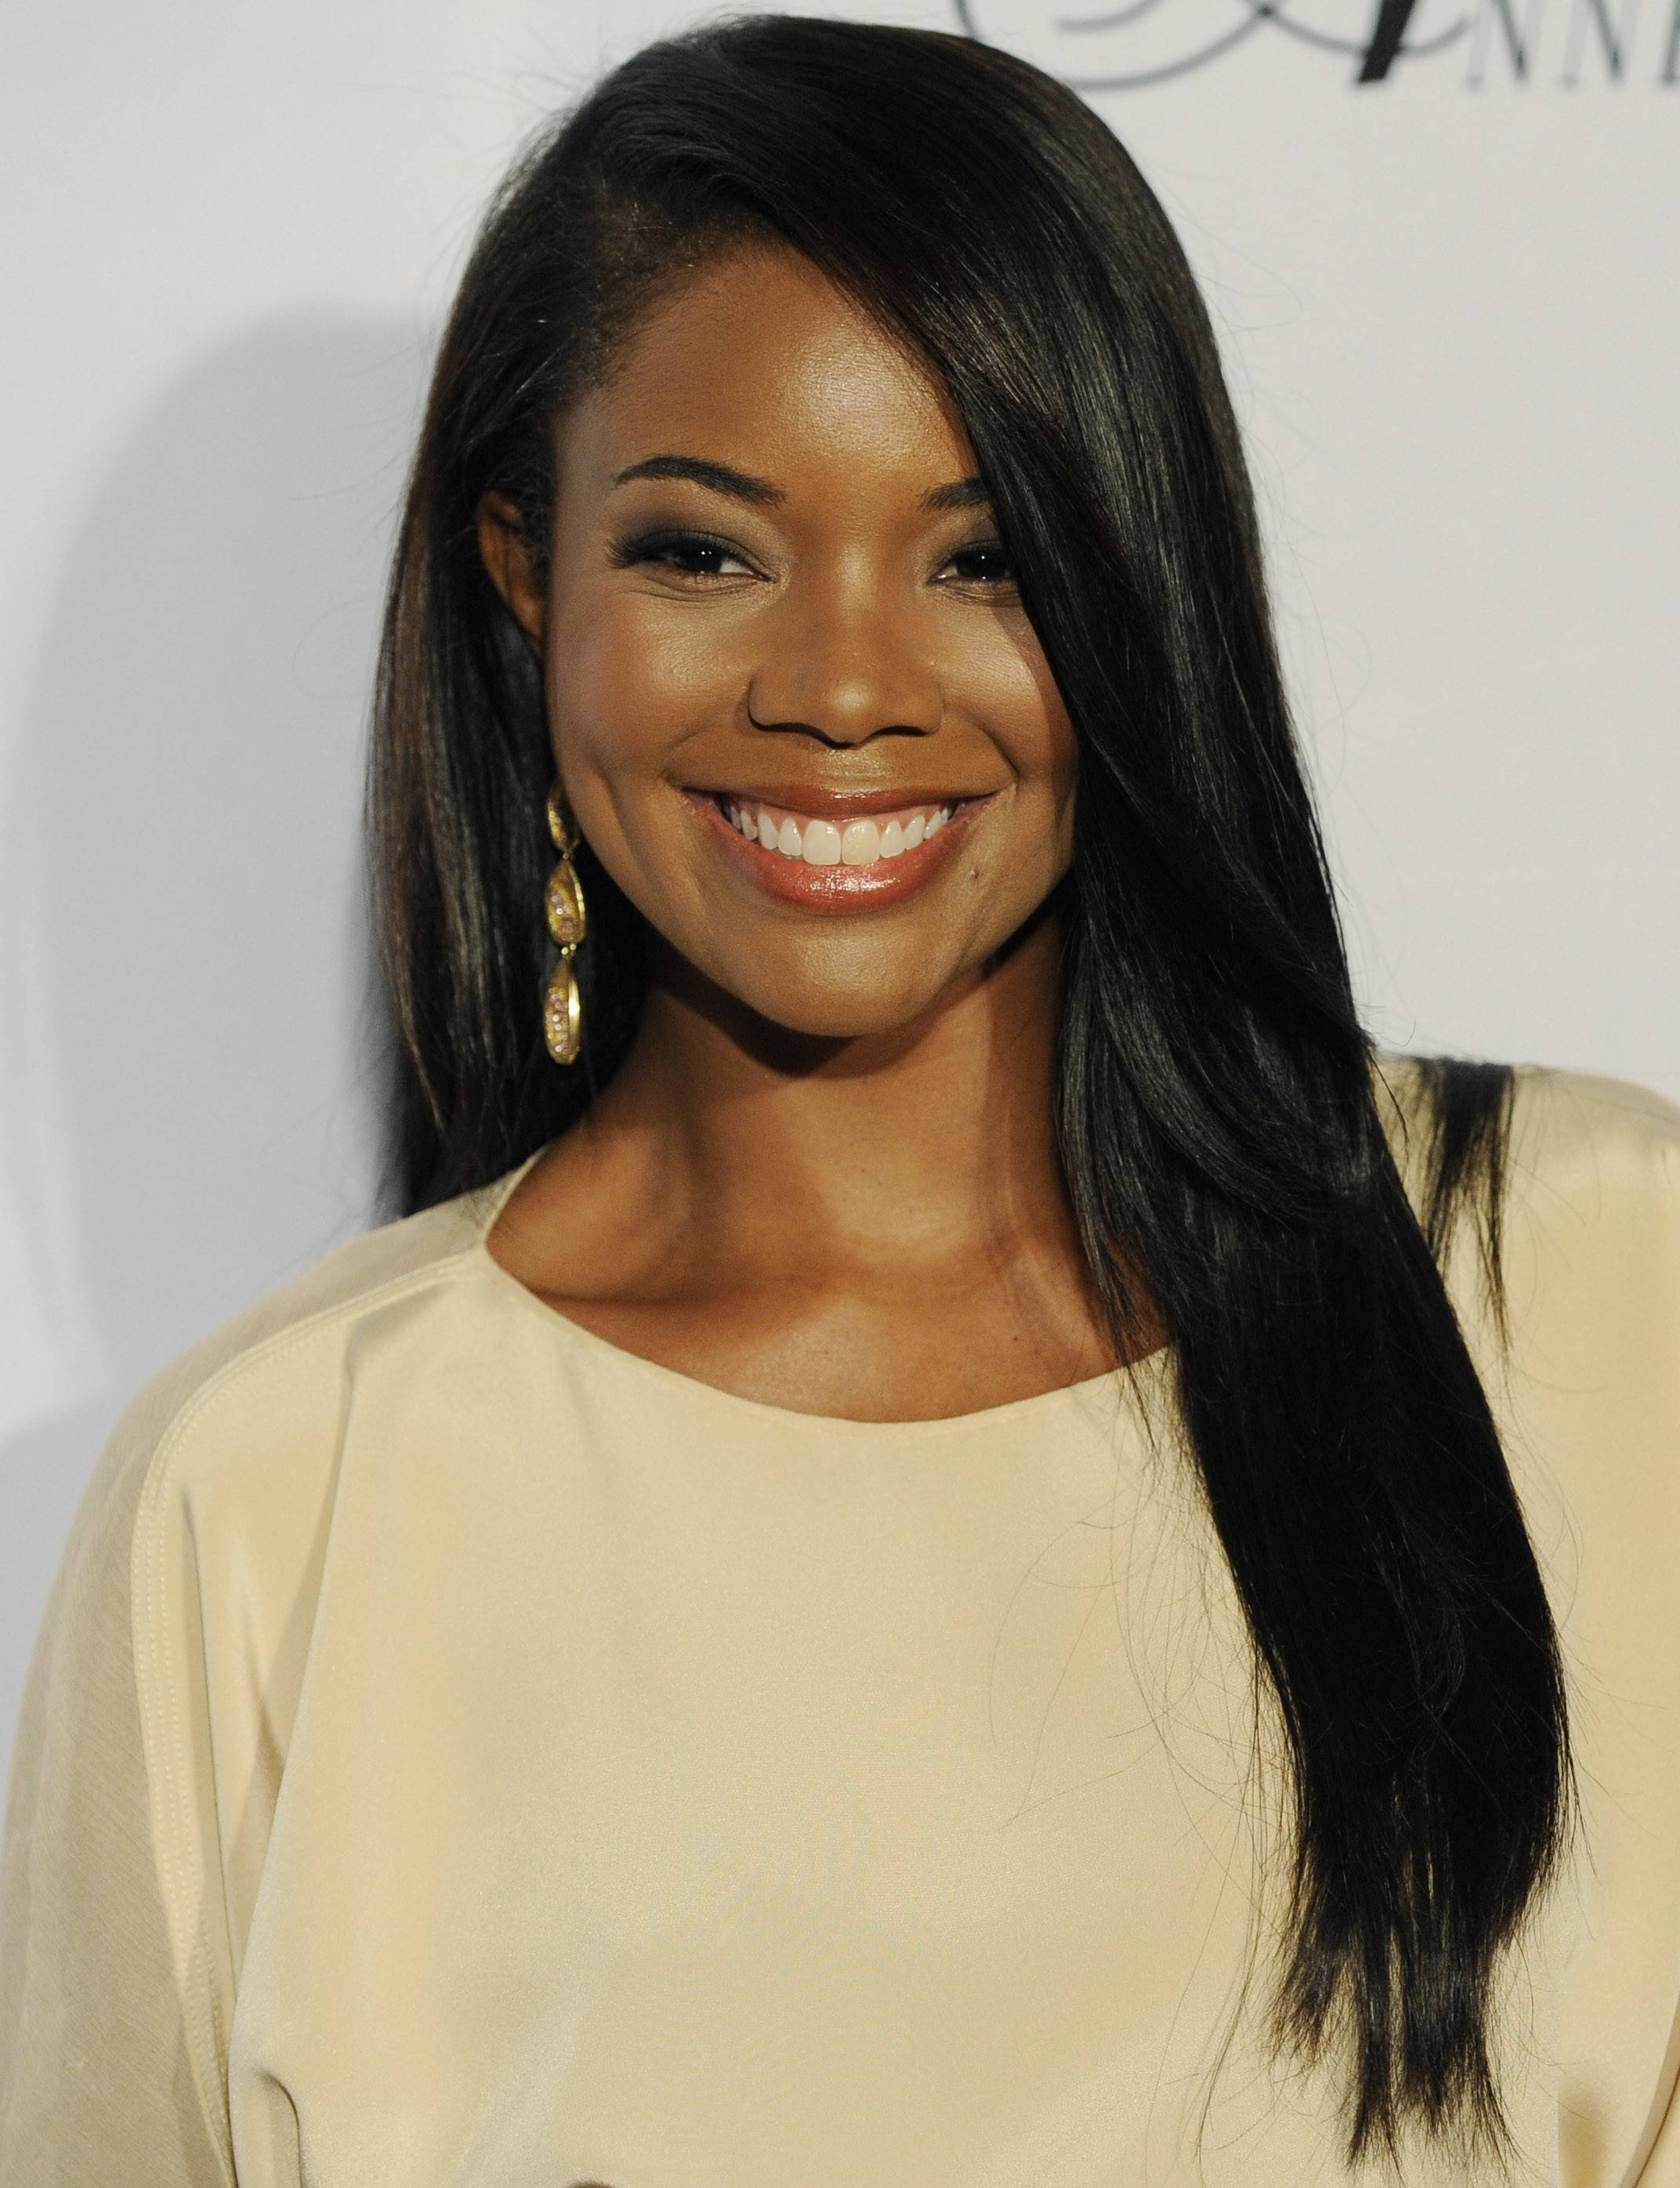 Actress Gabrielle Union discusses her new book at 7 p.m. Thursday, Oct. 26, at the Hilton Lisle/Naperville.